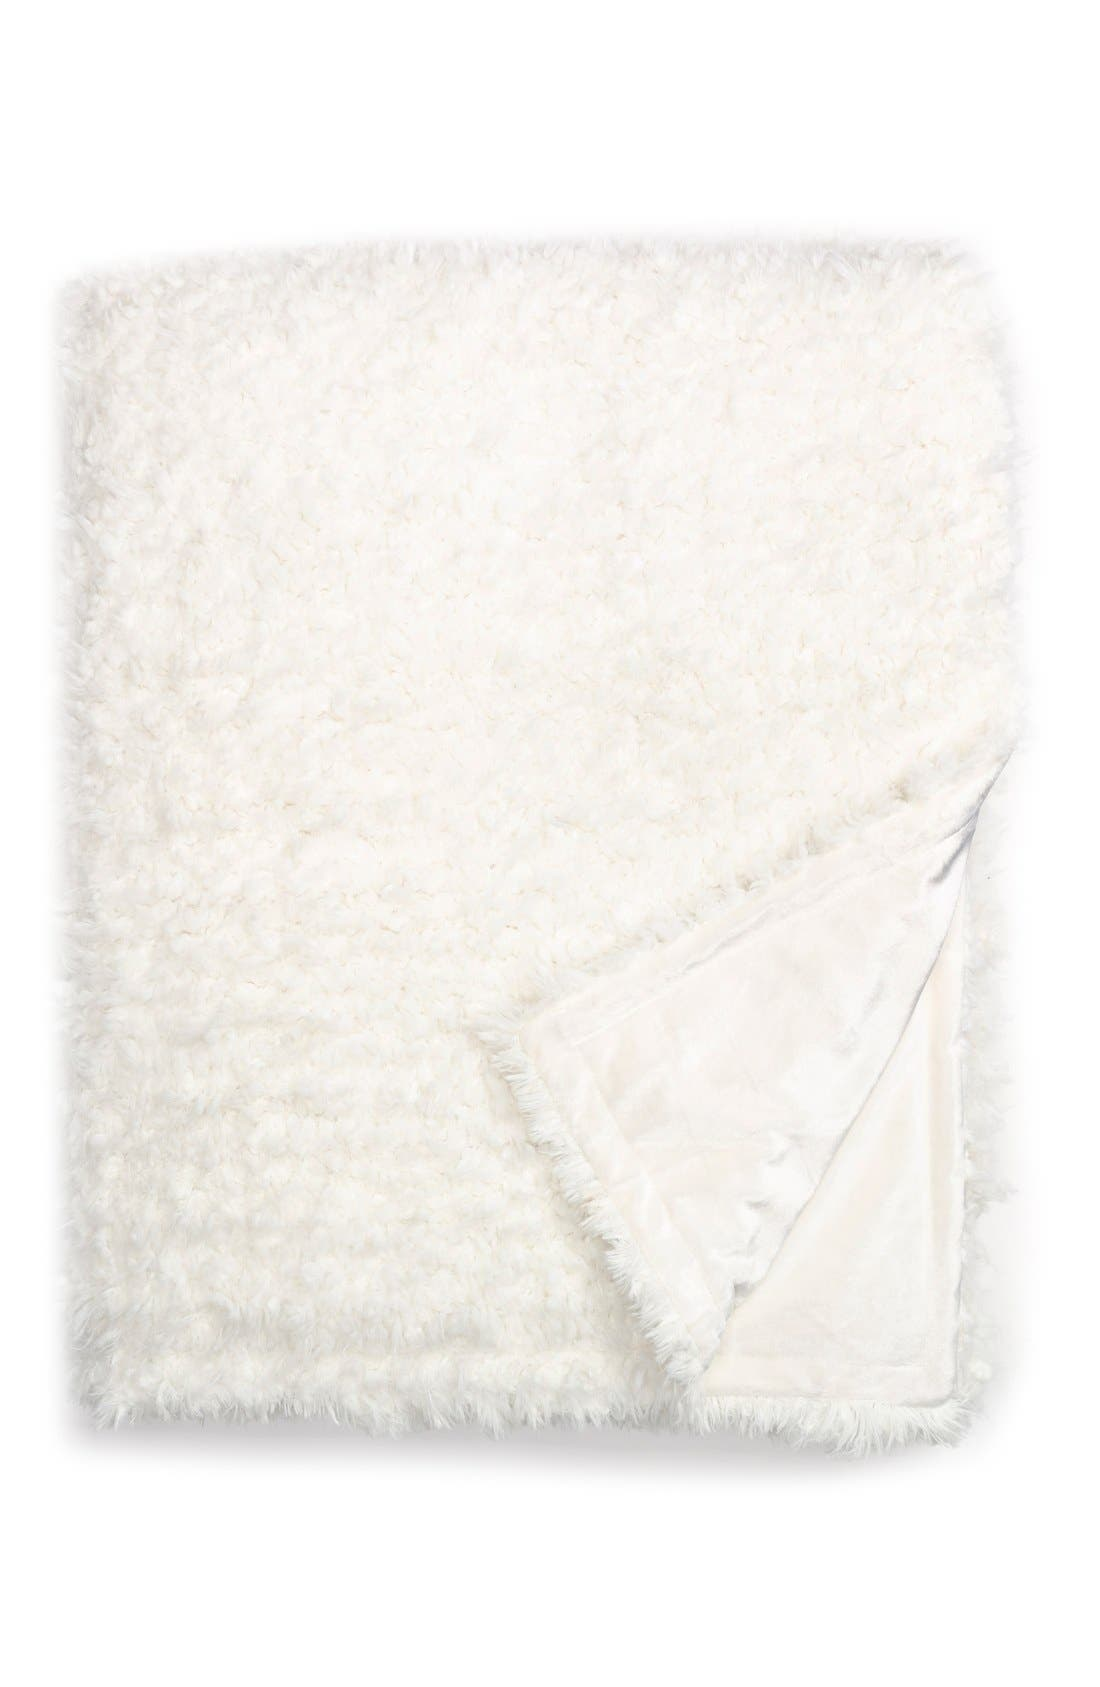 Nordstrom at Home 'Shaggy Plush' Faux Fur Blanket